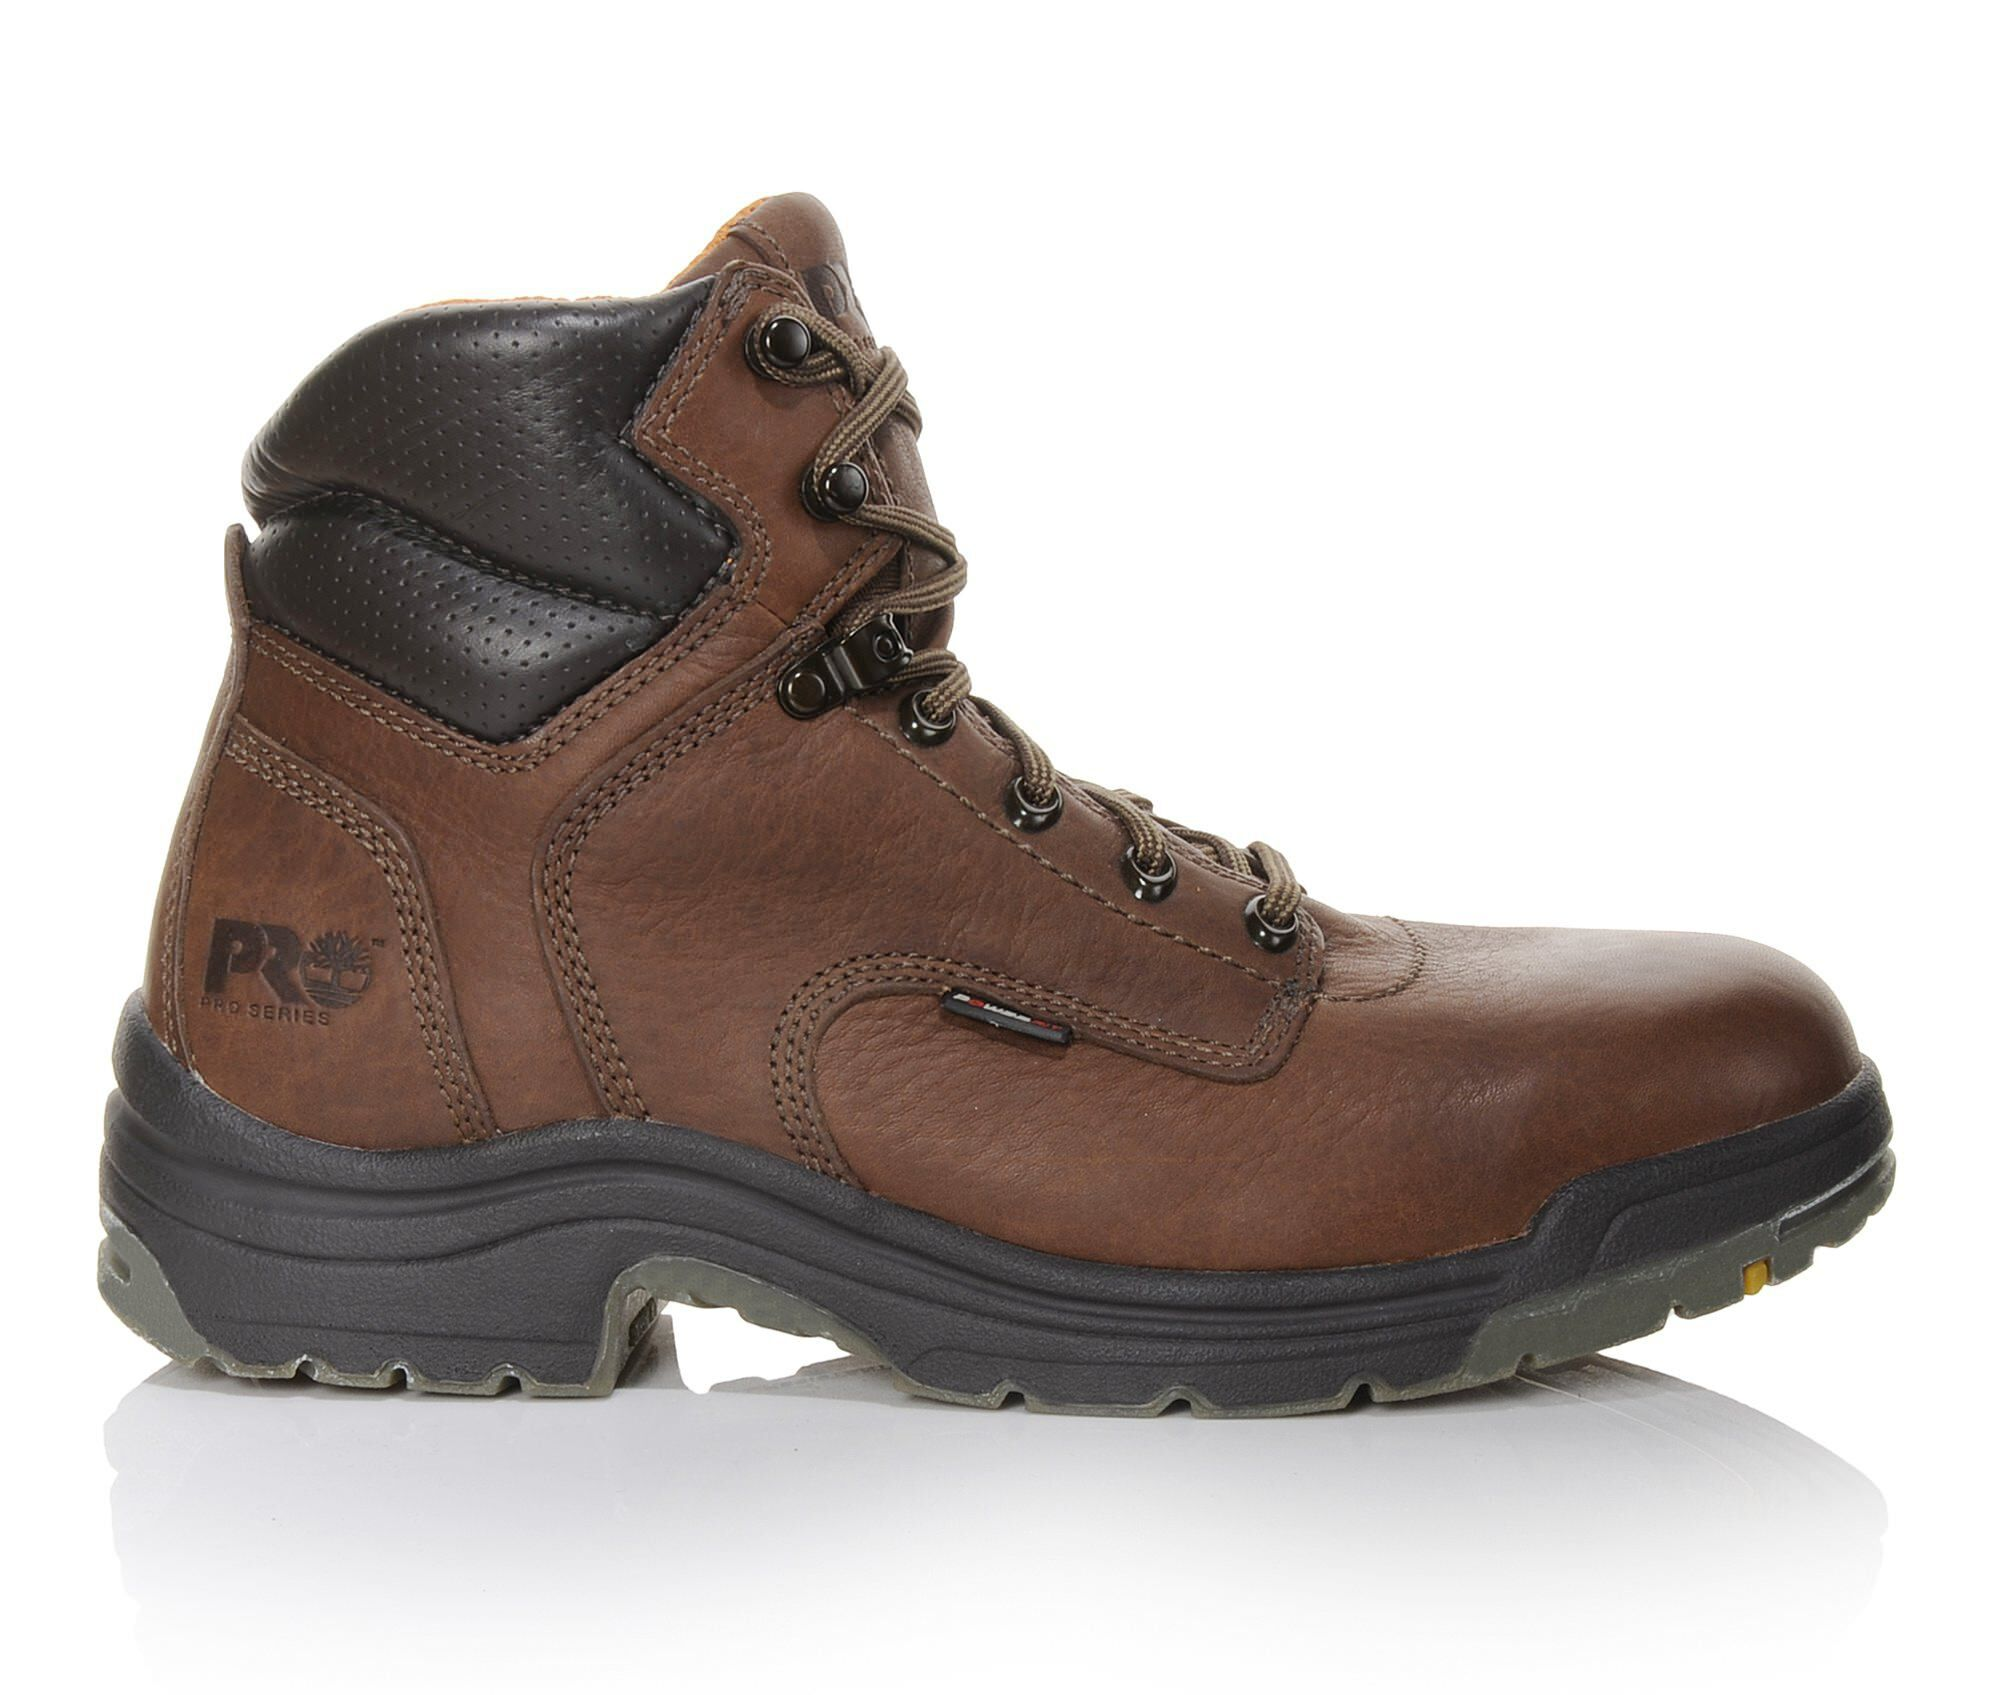 Timberland PRO Boots: Men's TiTAN 24097 Brown 6 Inch Soft Toe EH Work Boots